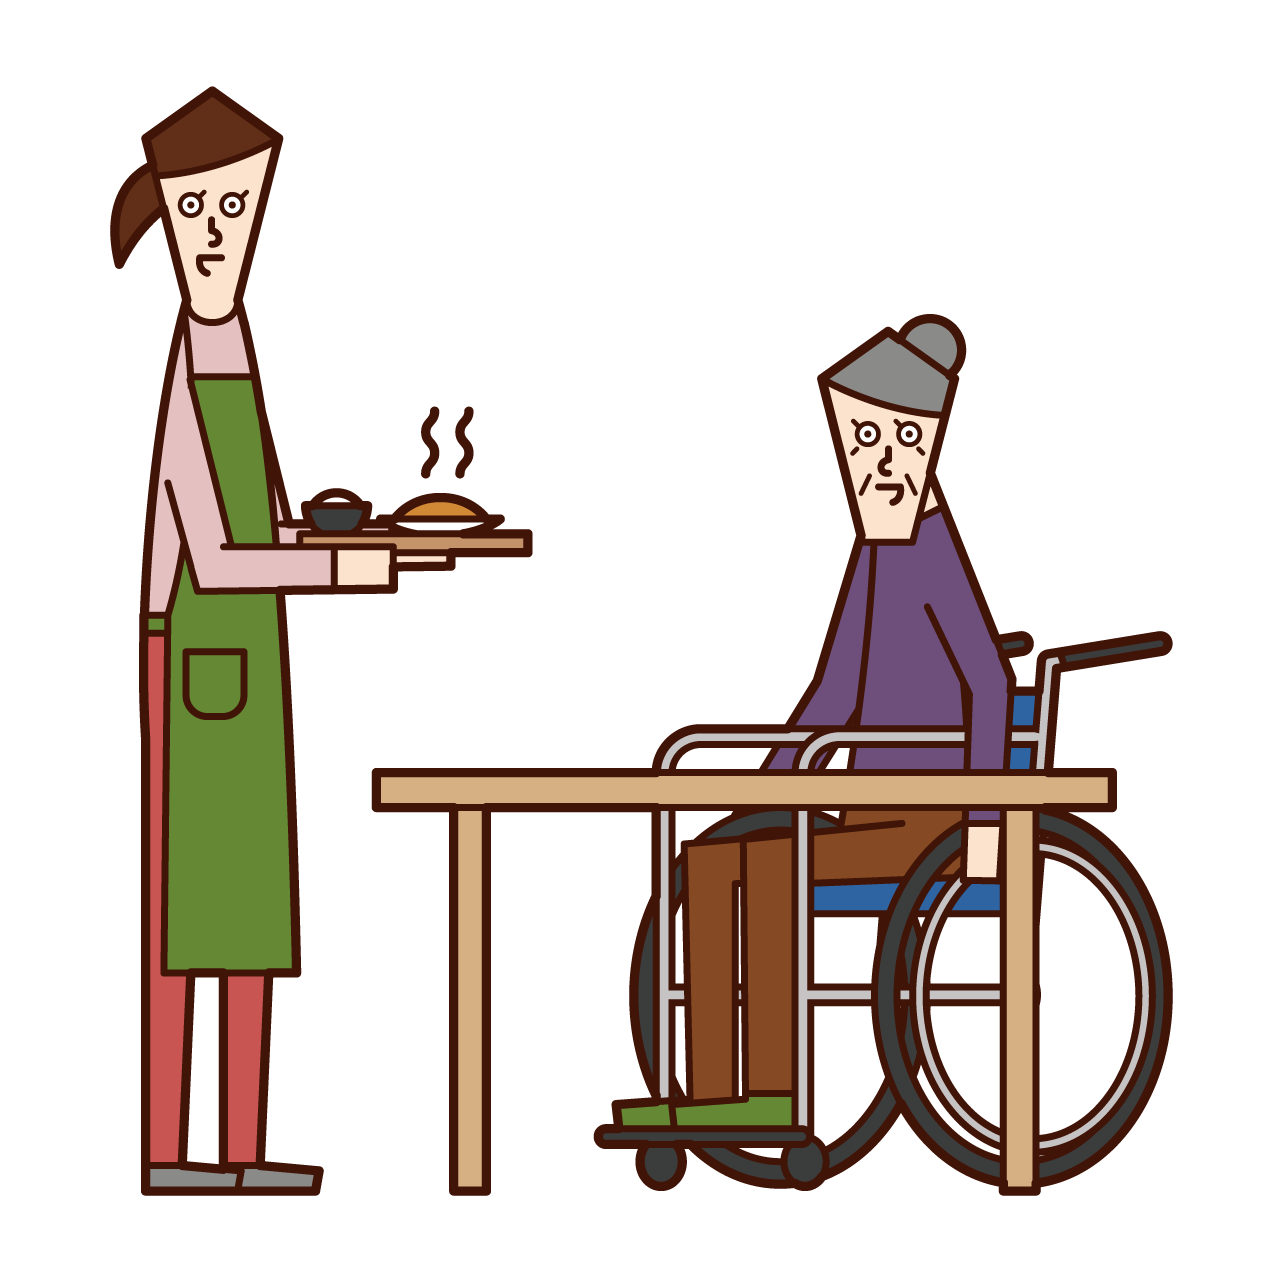 Illustration of care worker and home helper (woman) who prepares meals